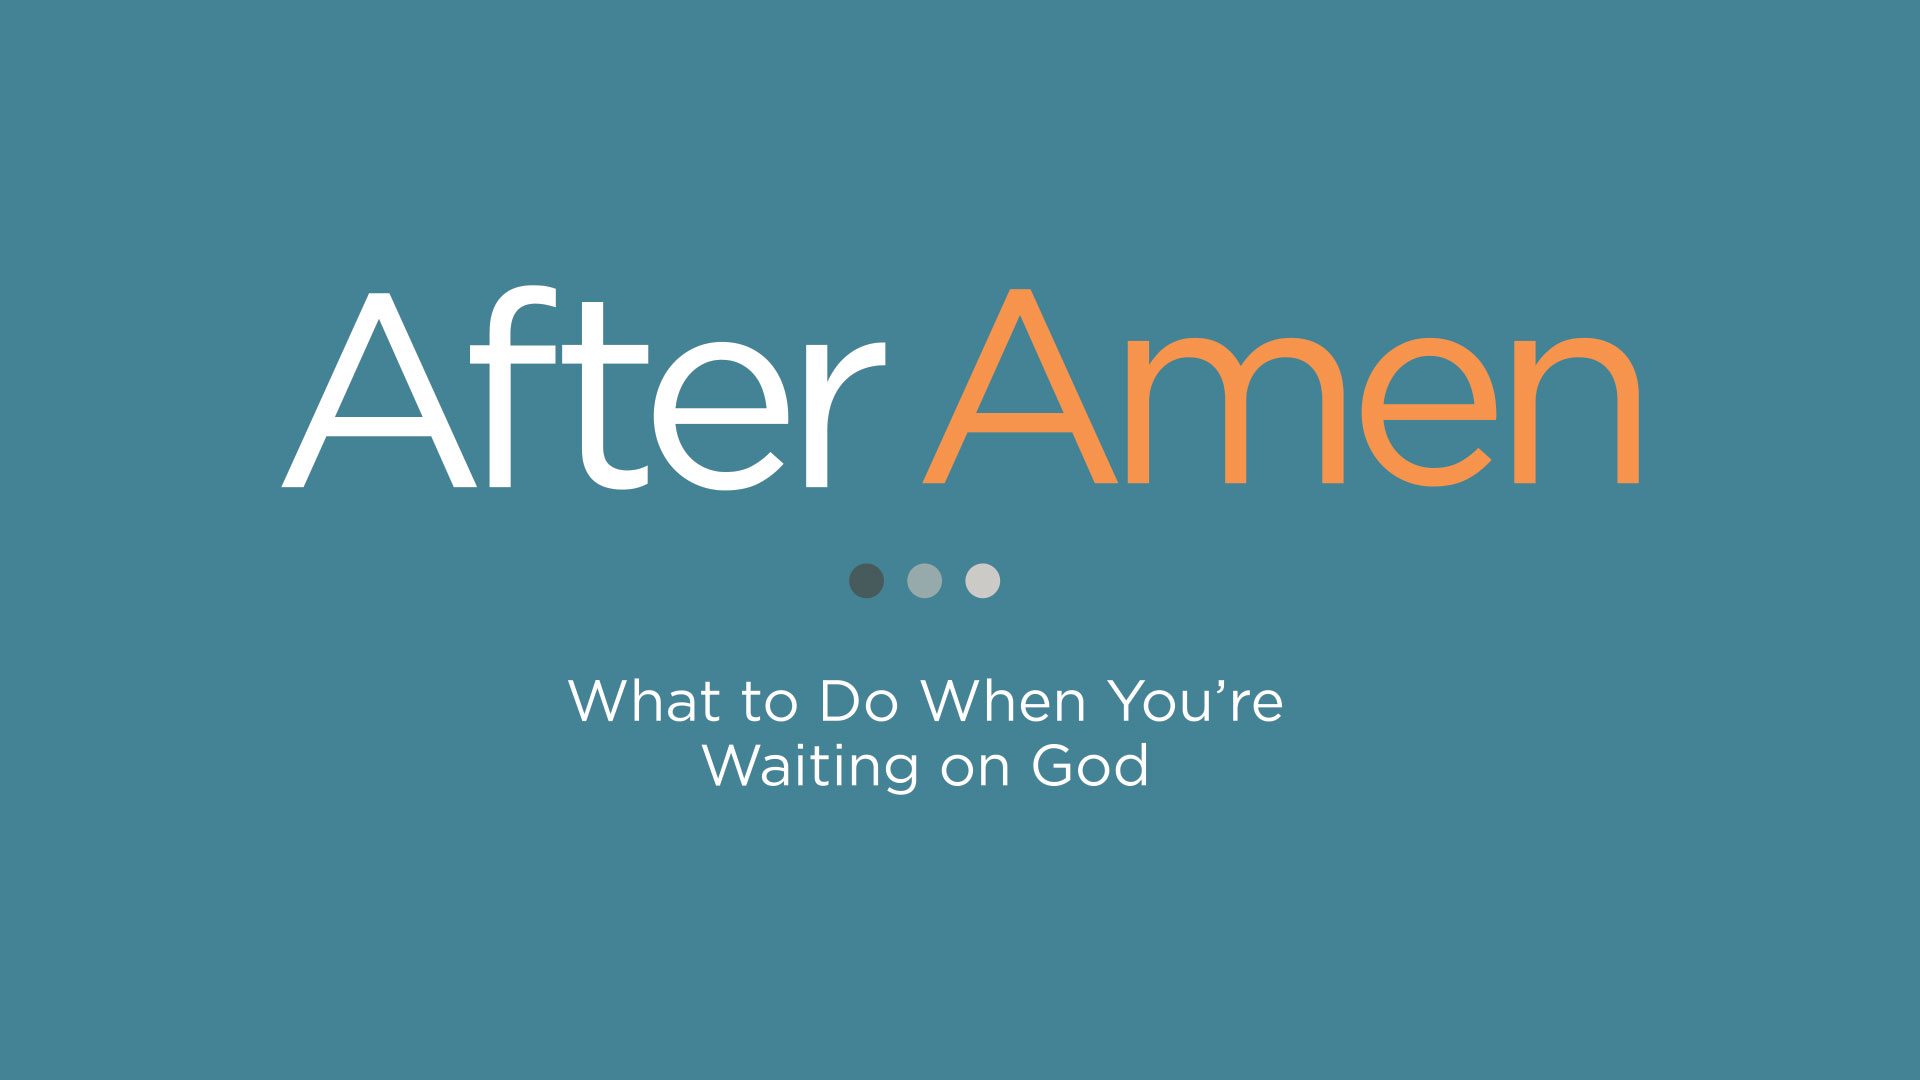 Message Series: After Amen